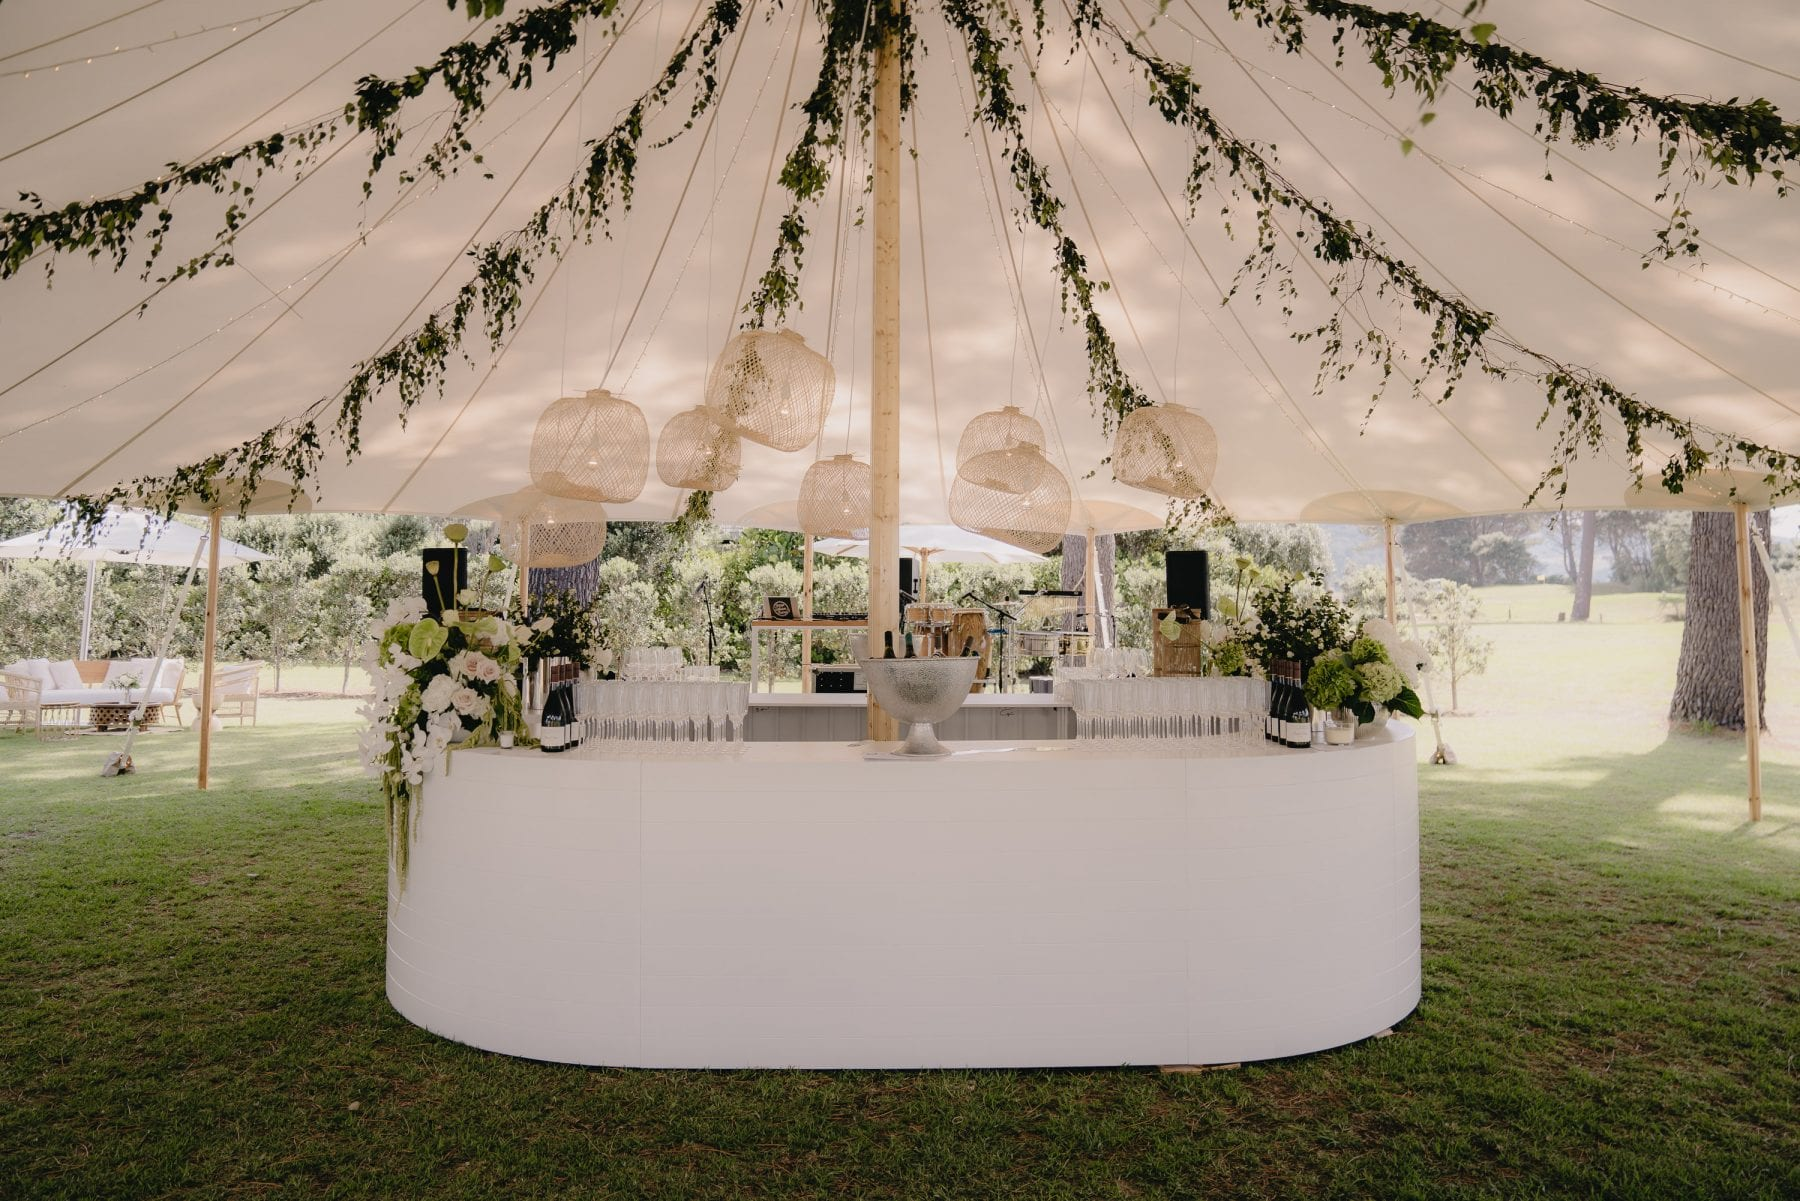 On My Hand wedding flowers real wedding - Rueben and Hannah - floral styling for wedding reception marquee hanging flowere and table runners